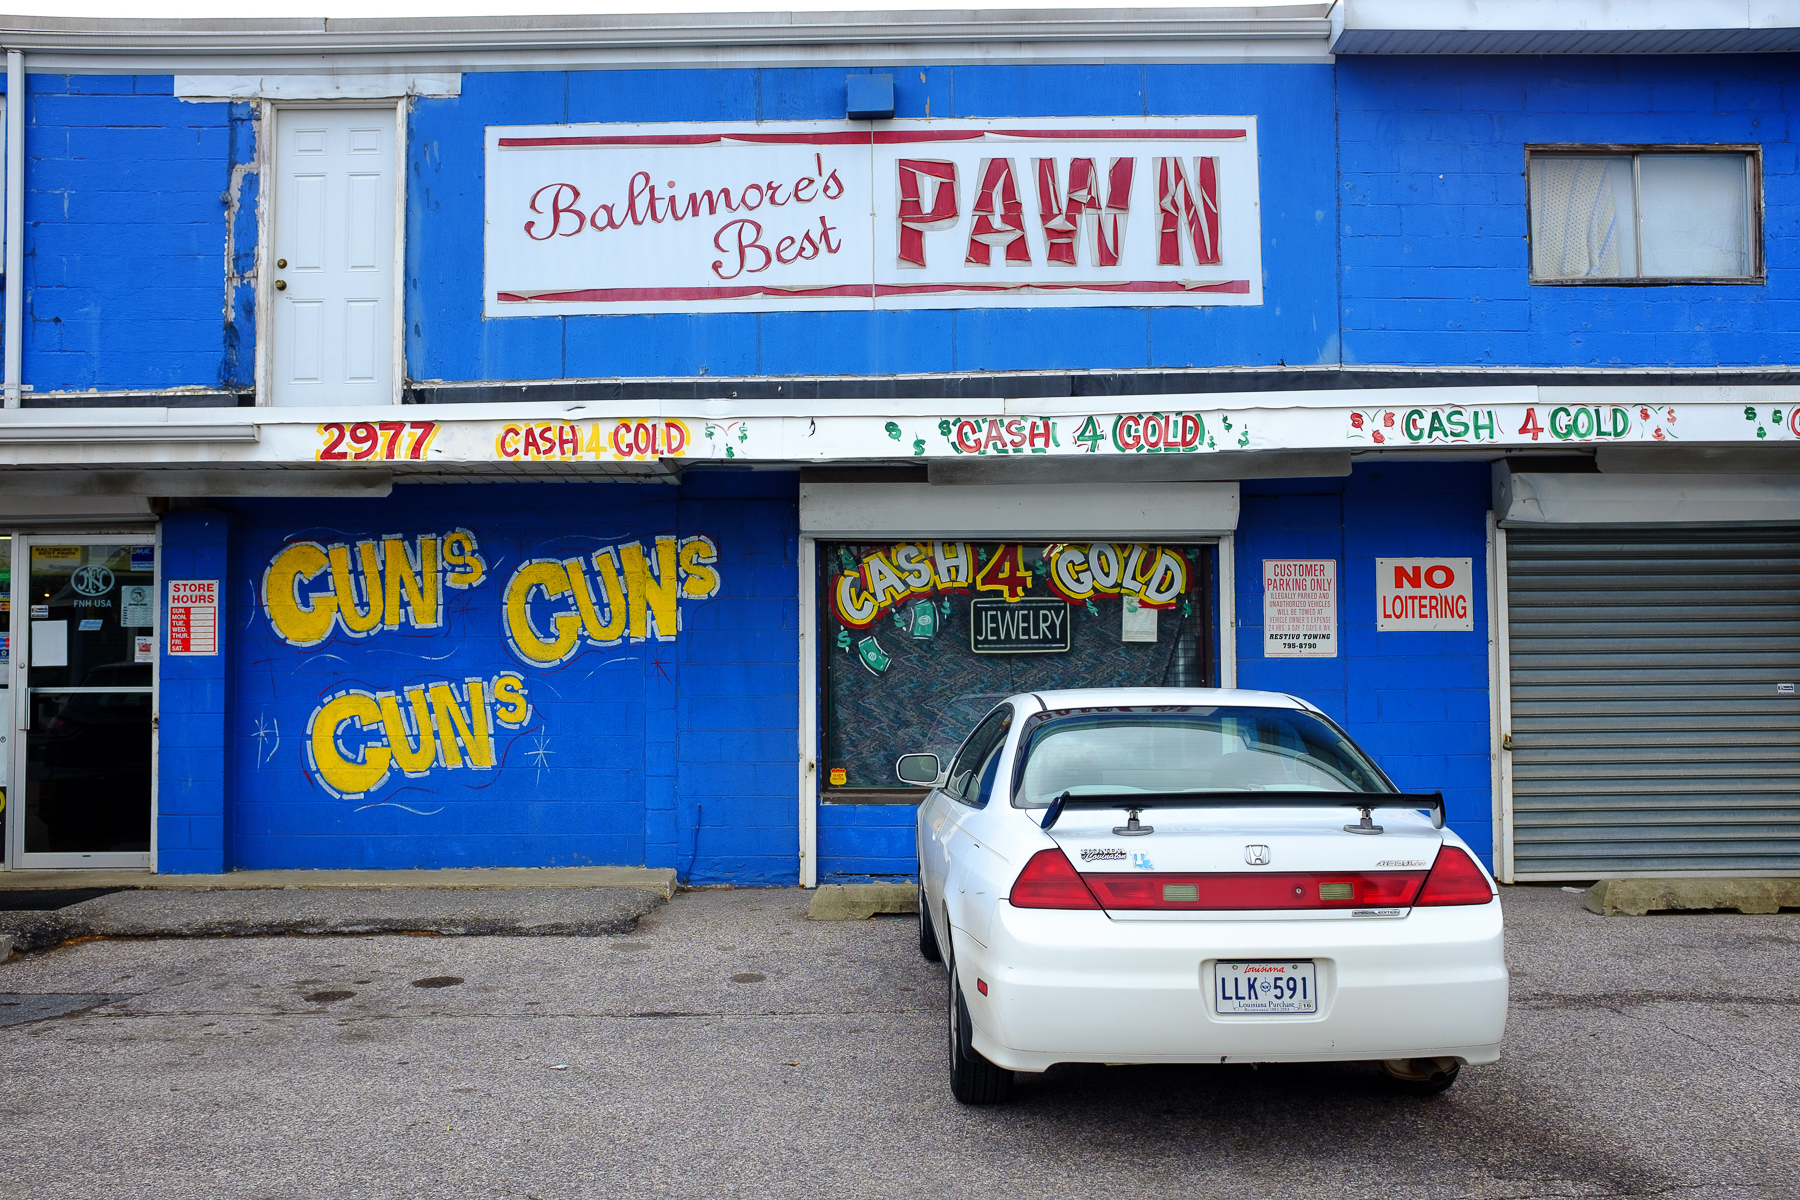 """""""Baltimore's Best Pawn"""" April, 2016. Westminster, MD  Fujifilm X100s, 23mm, f/5.6, 1/350, ISO 200"""